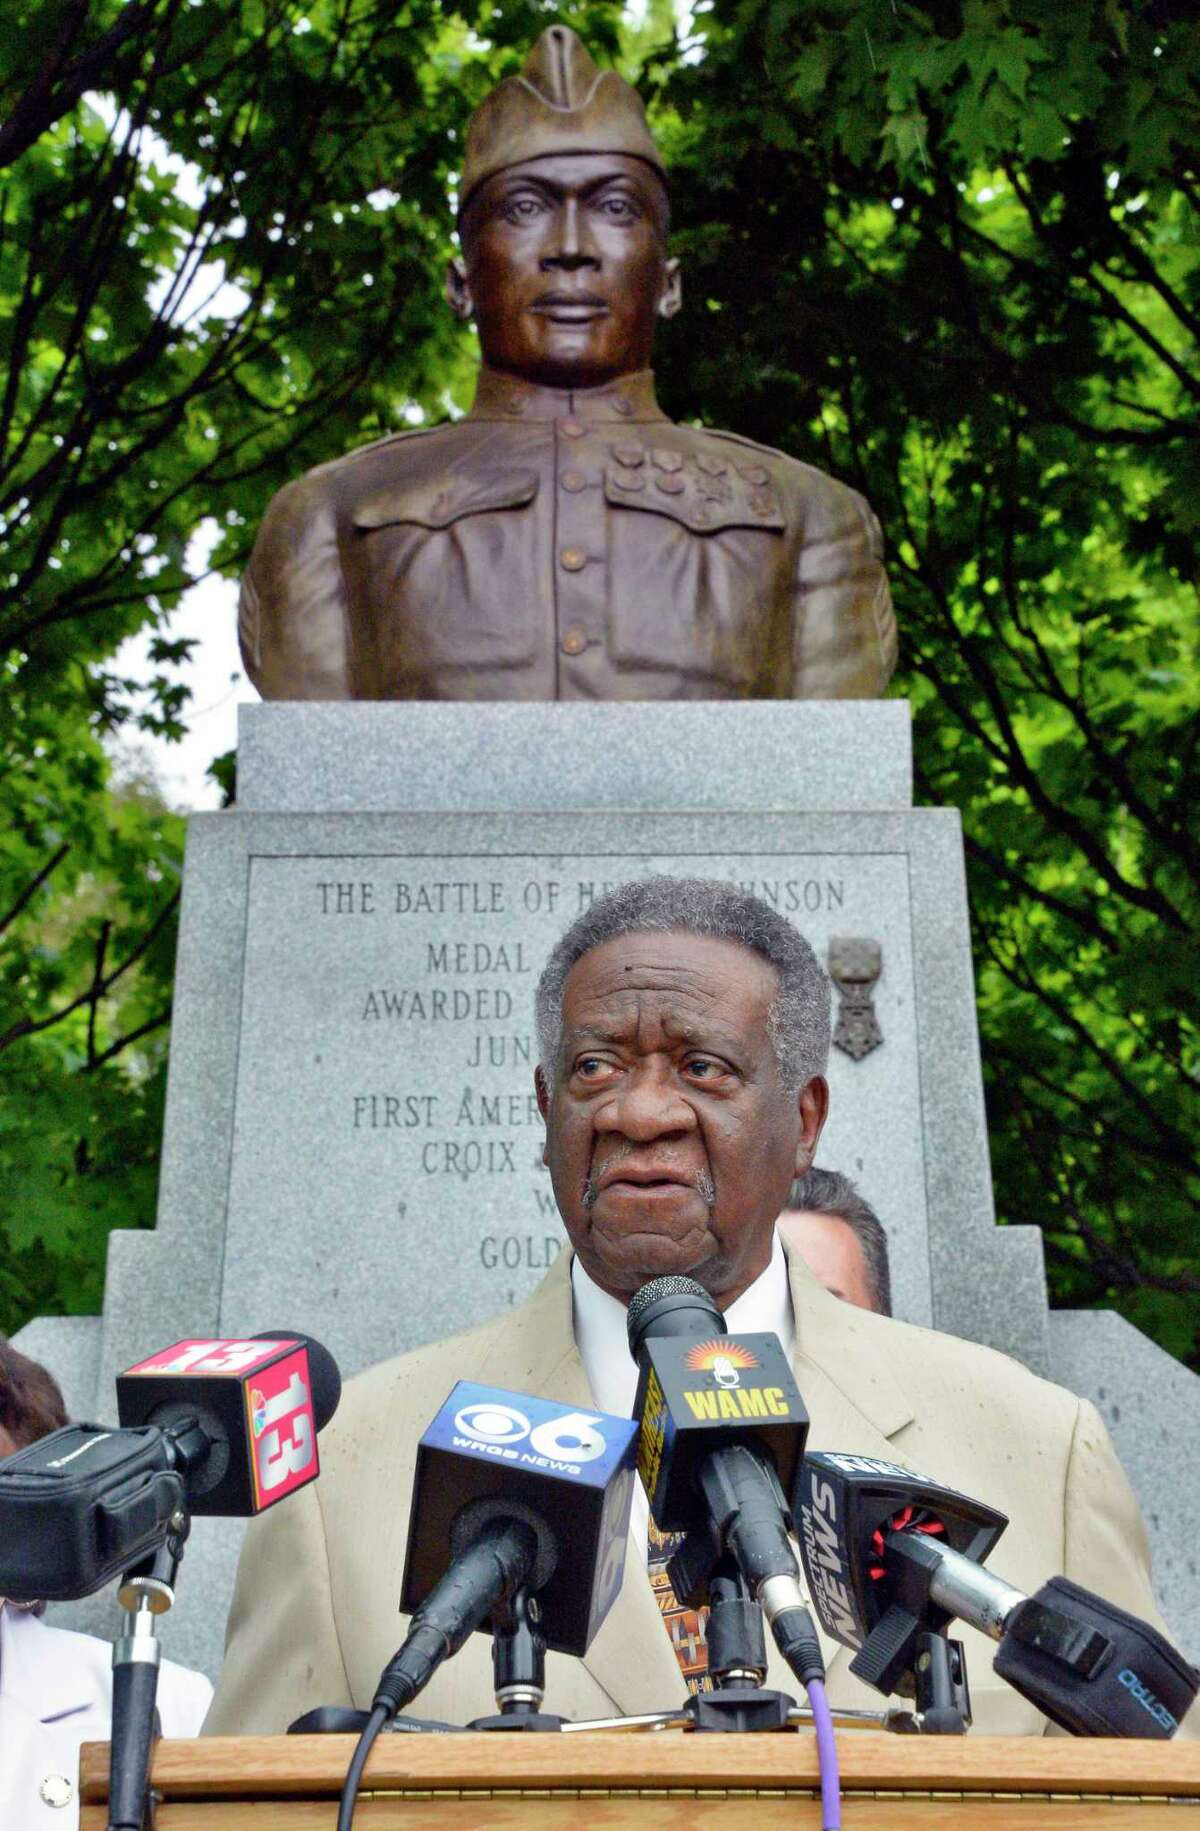 County legislator William Clay reads the Medal of Honor citation for Sgt. Henry Johnson on the 100th anniversary of Henry Johnson's defeat of nearly two dozen German soldiers, an act that won him the Medal of Honor during a ceremony in Washington Park Tuesday May 15, 2018 in Albany,NY. (John Carl D'Annibale/Times Union)